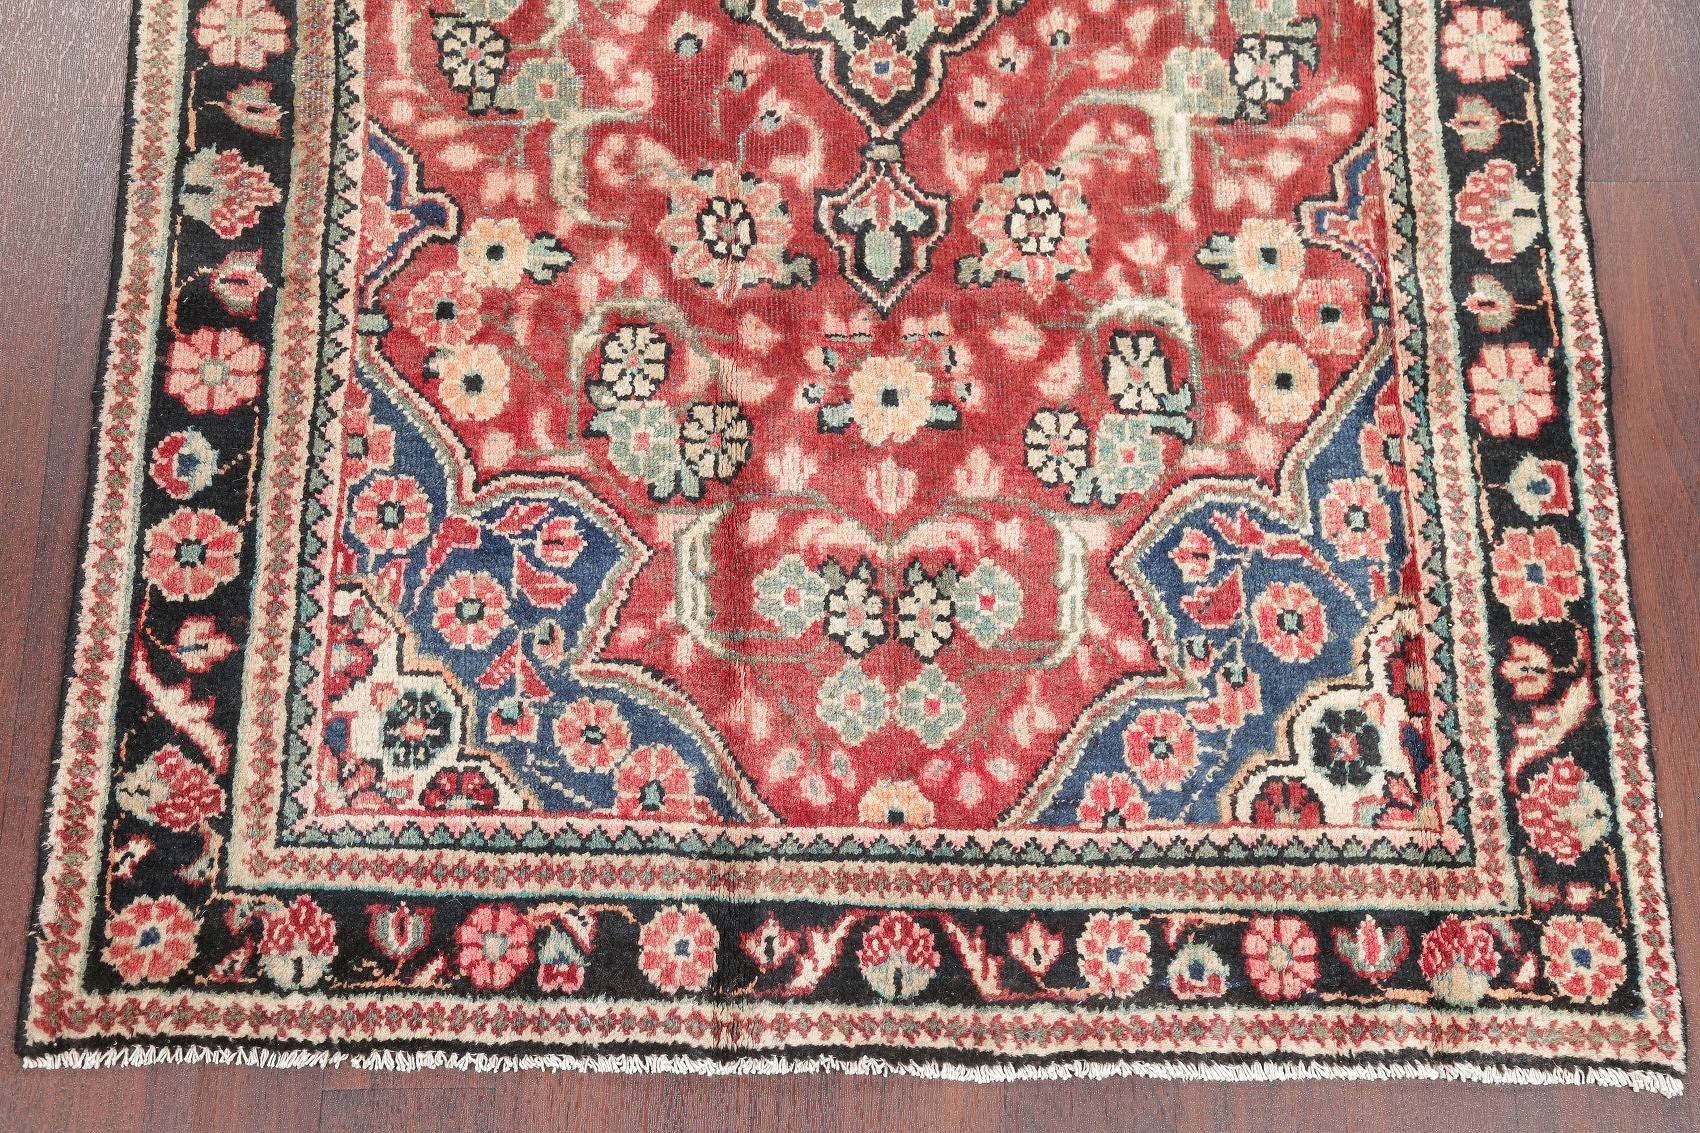 Antique Floral Sarouk Mahal Persian Hand-Knotted 4x6 Wool Area Rug